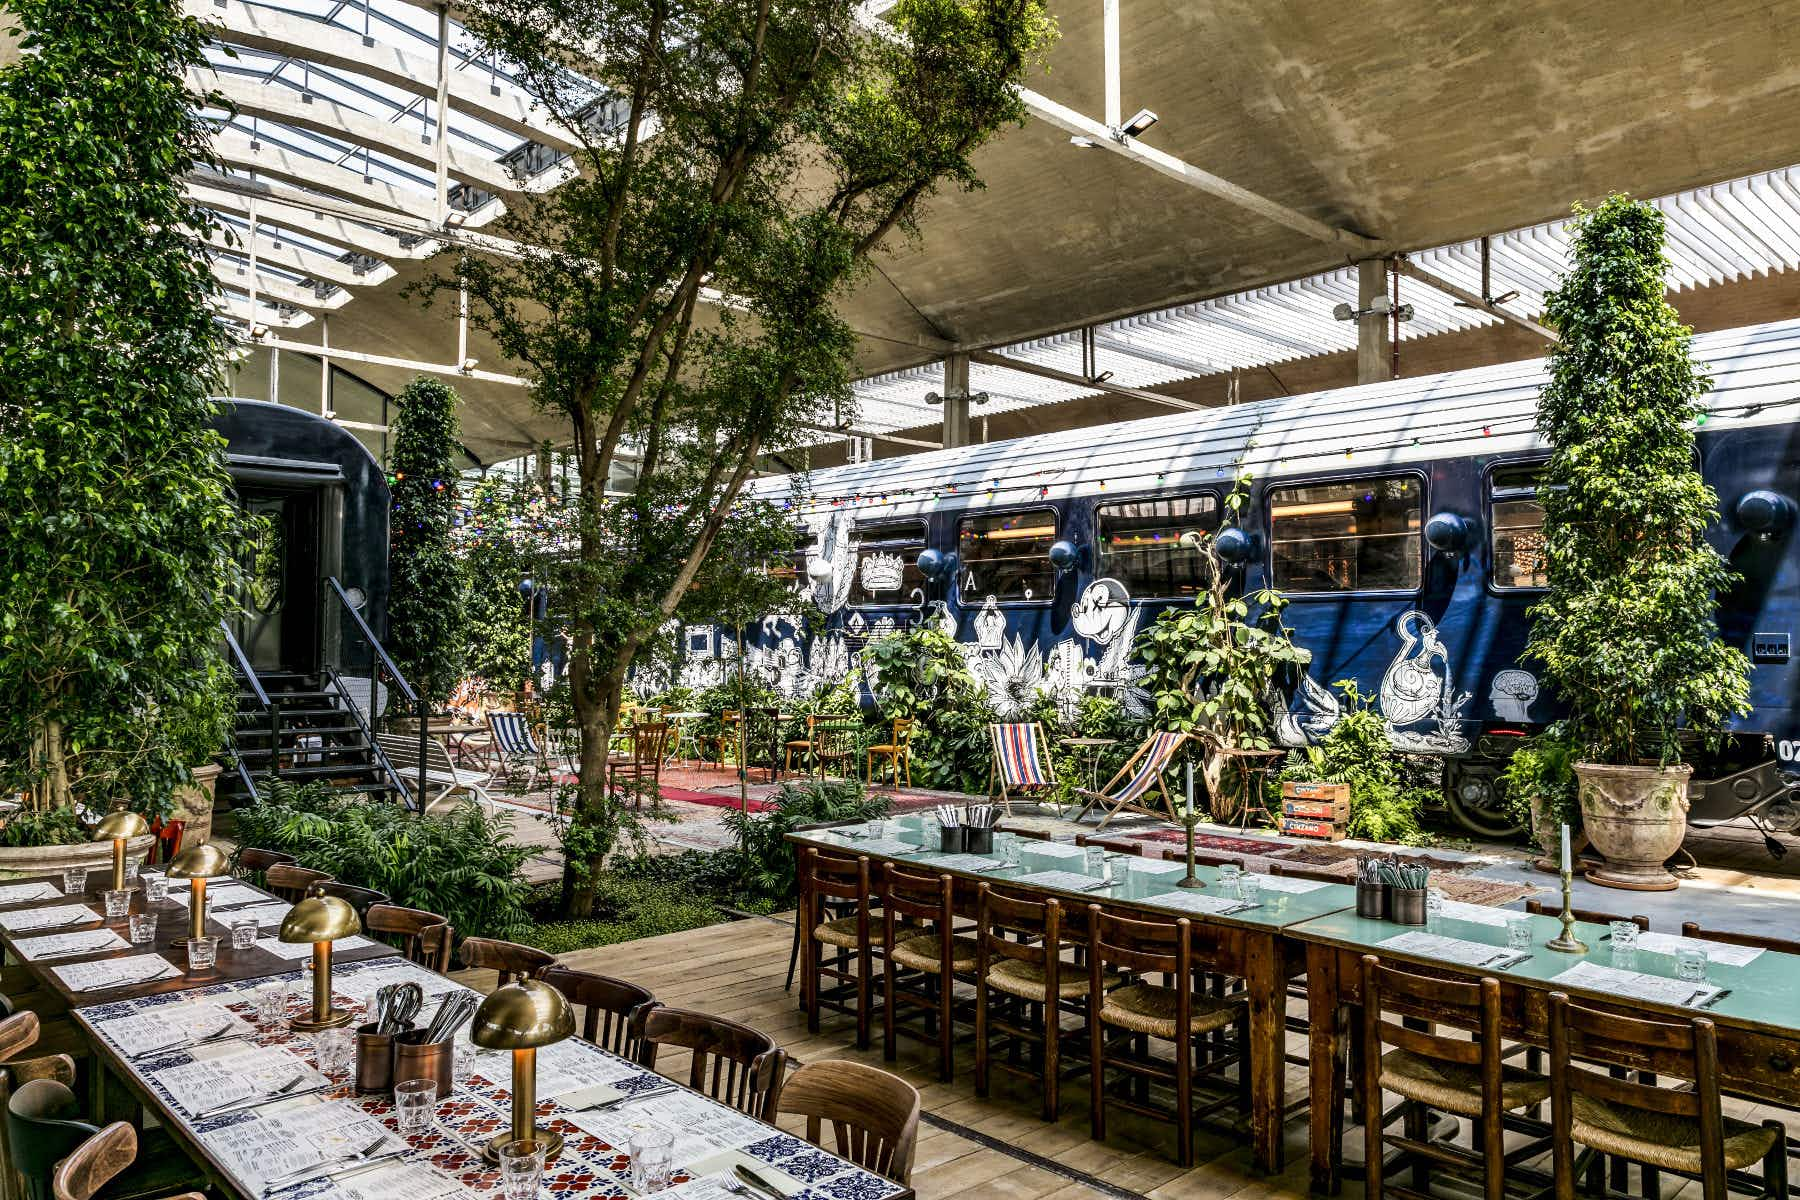 Paris' hippest district is now home to Europe's largest restaurant